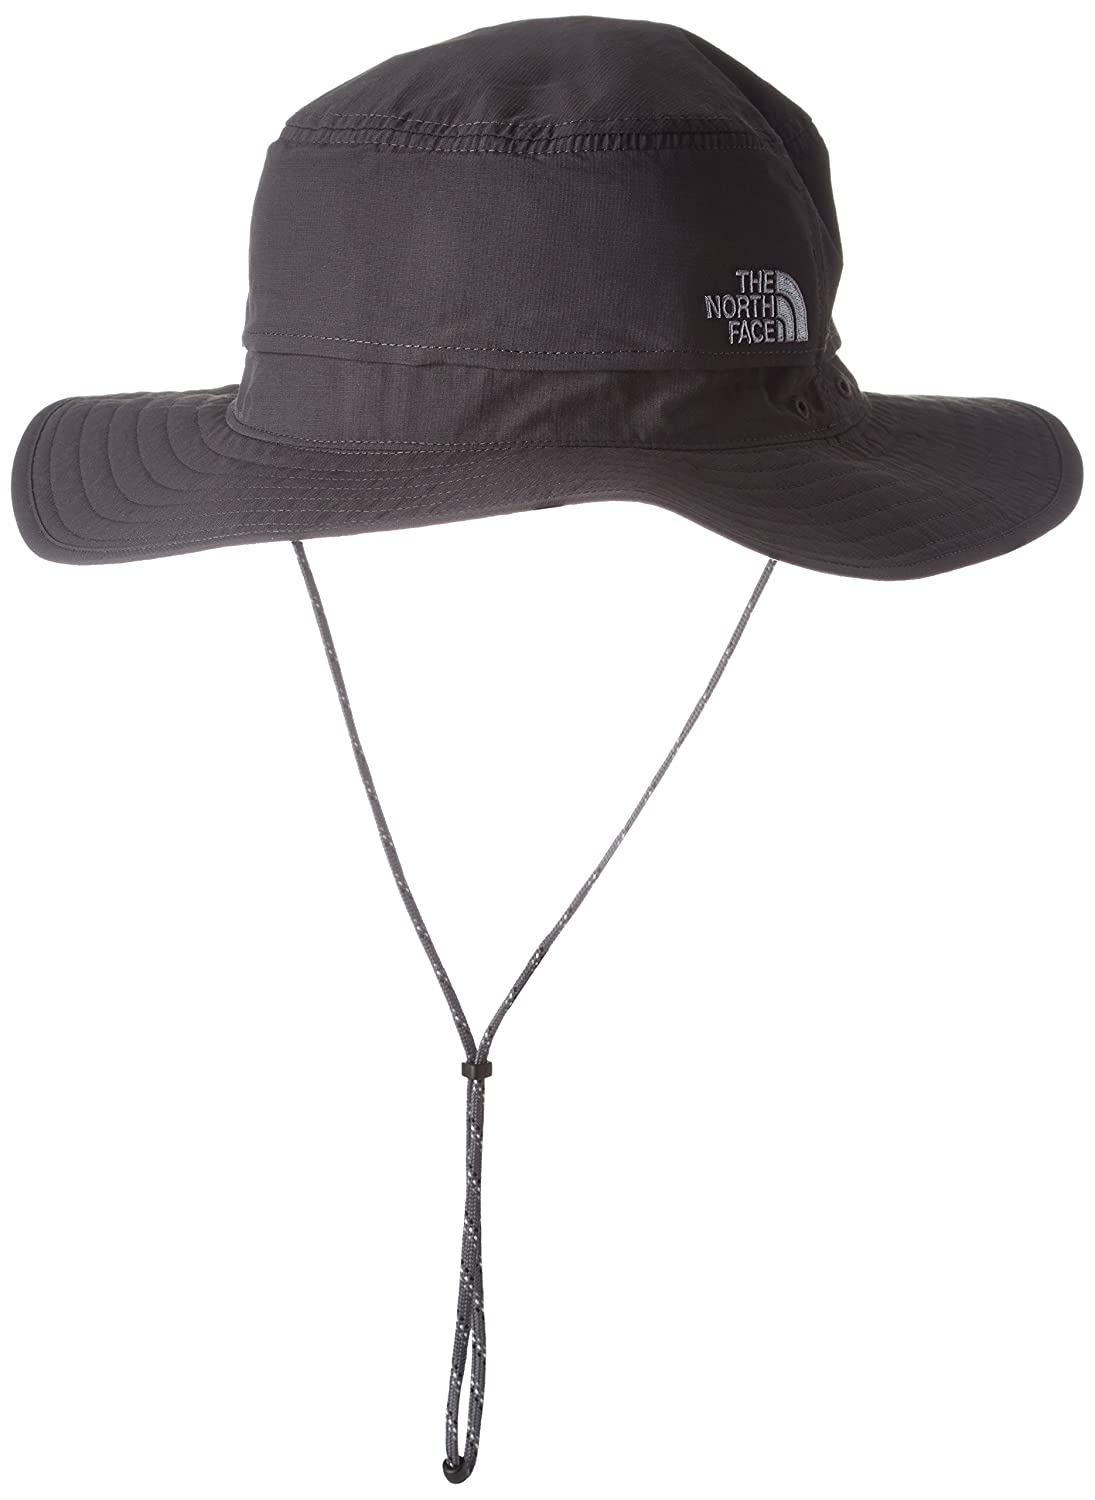 90e78e04cfa The north face horizon breeze brimmer hat at amazon mens clothing store jpg  1095x1500 North face